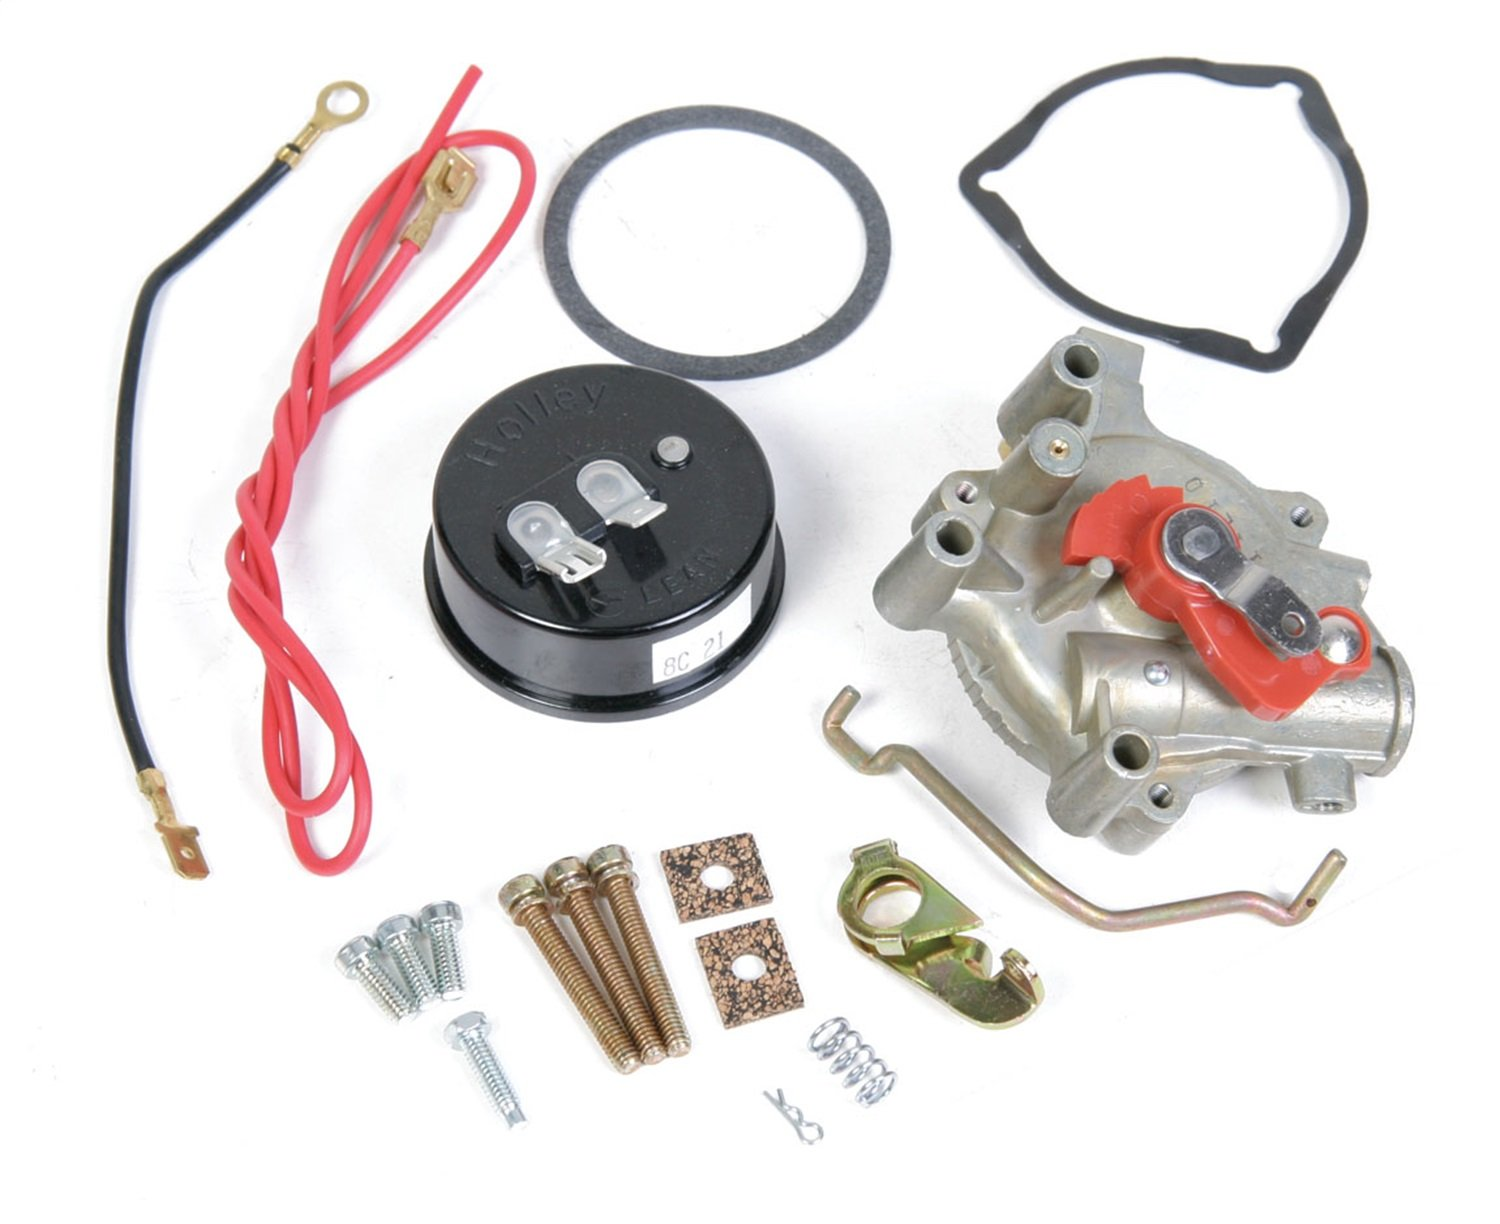 Amazon com: Holley 745-223 Marine Electric Choke Kit: Automotive